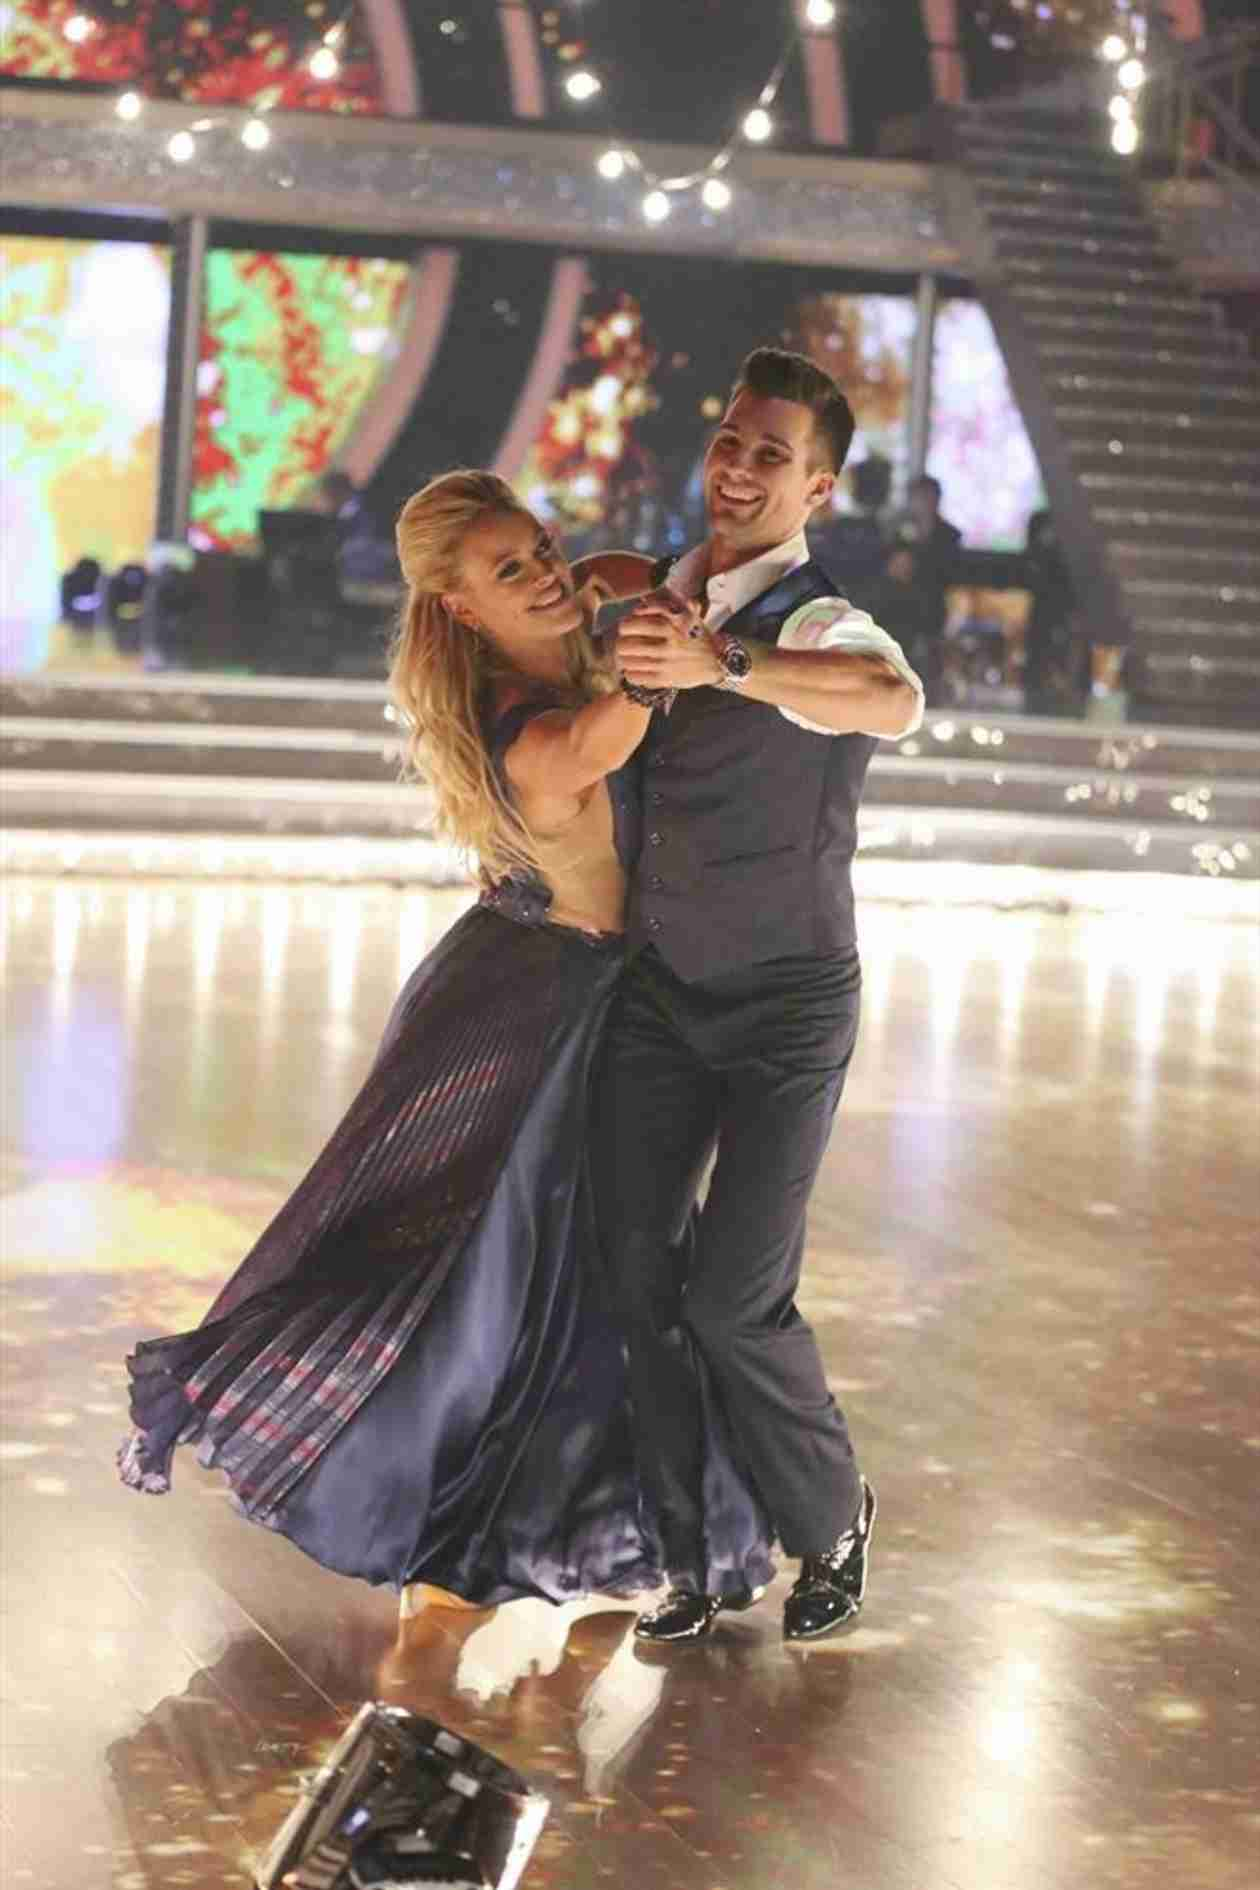 Dancing With the Stars 2014: James Maslow and Peta Murgatroyd's Finale Tango (VIDEO)